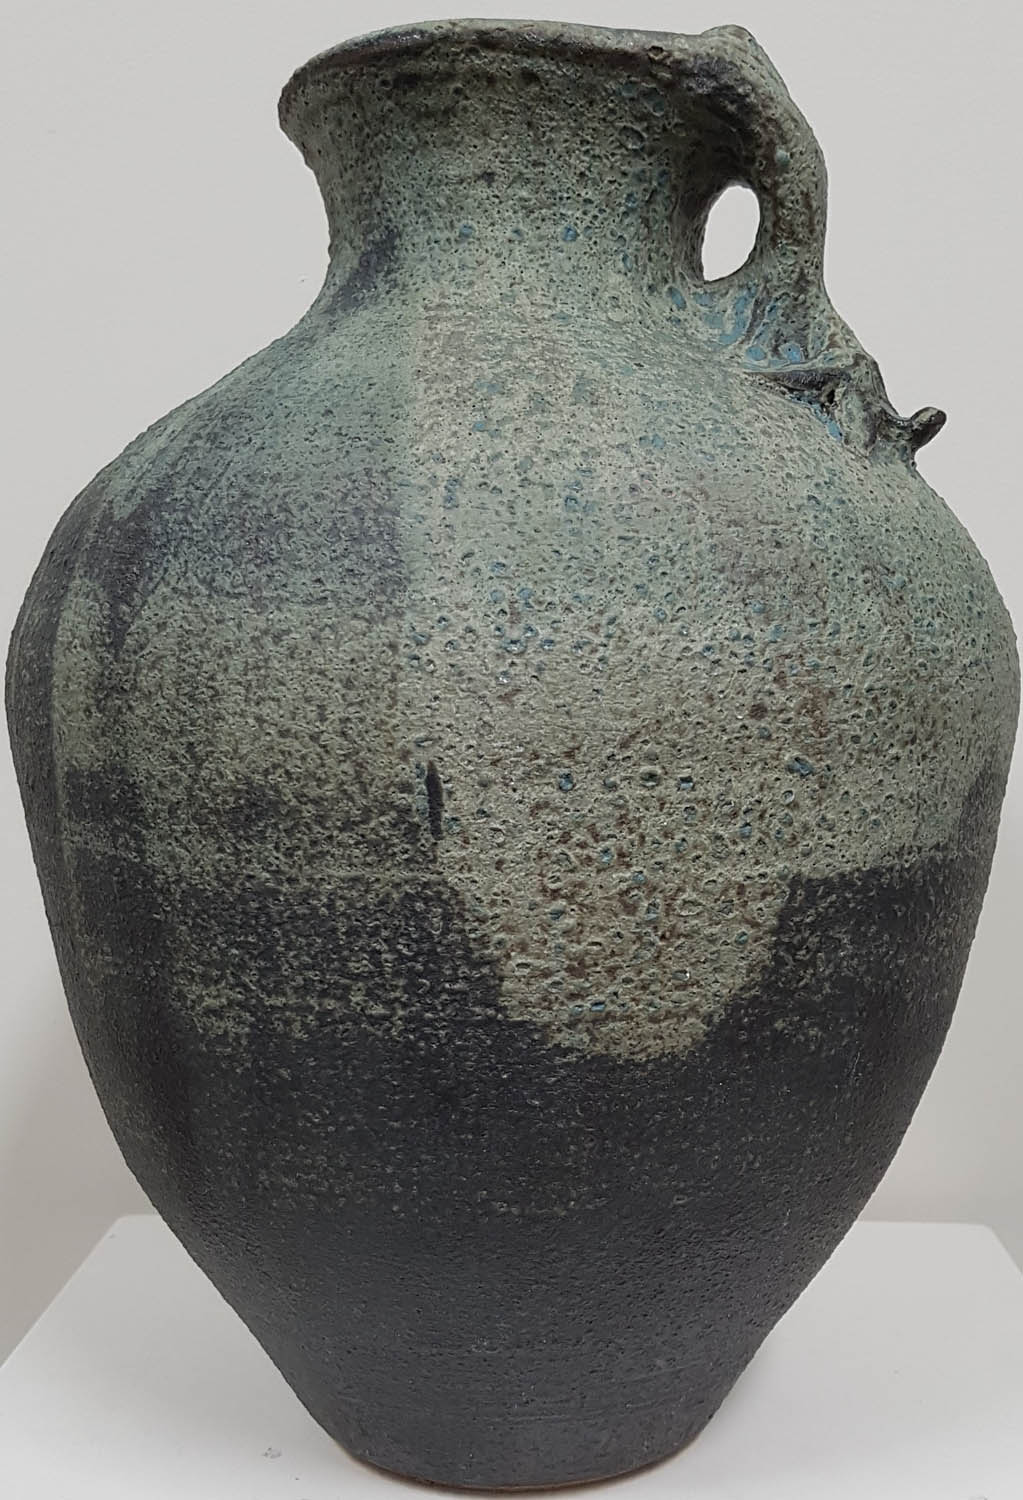 Large Urn by Frederika Ernsten - Art in christchurch Windsor Gallery